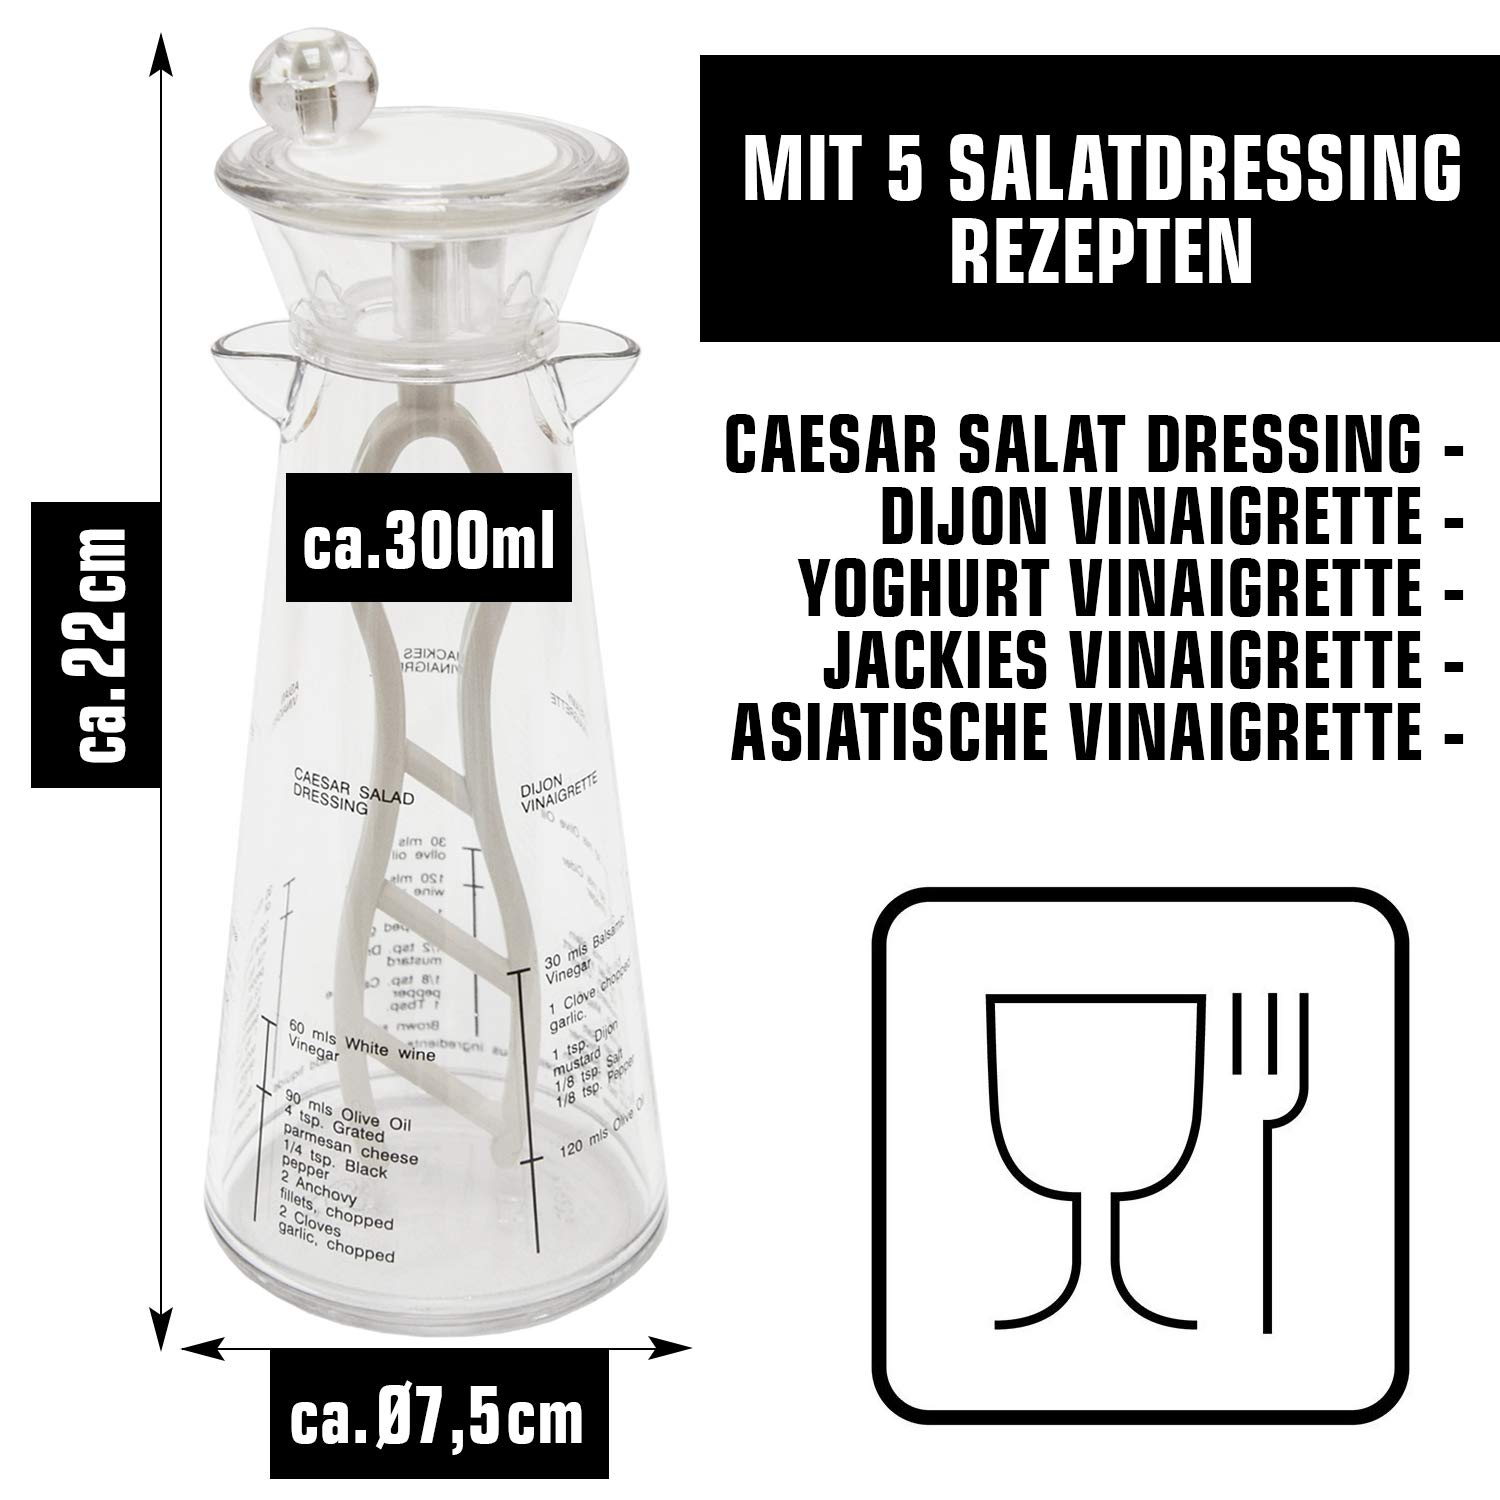 10451 Salad Dressing Mixer with Recipes in the carafe Dressing Shaker Salad Dressing Mixer